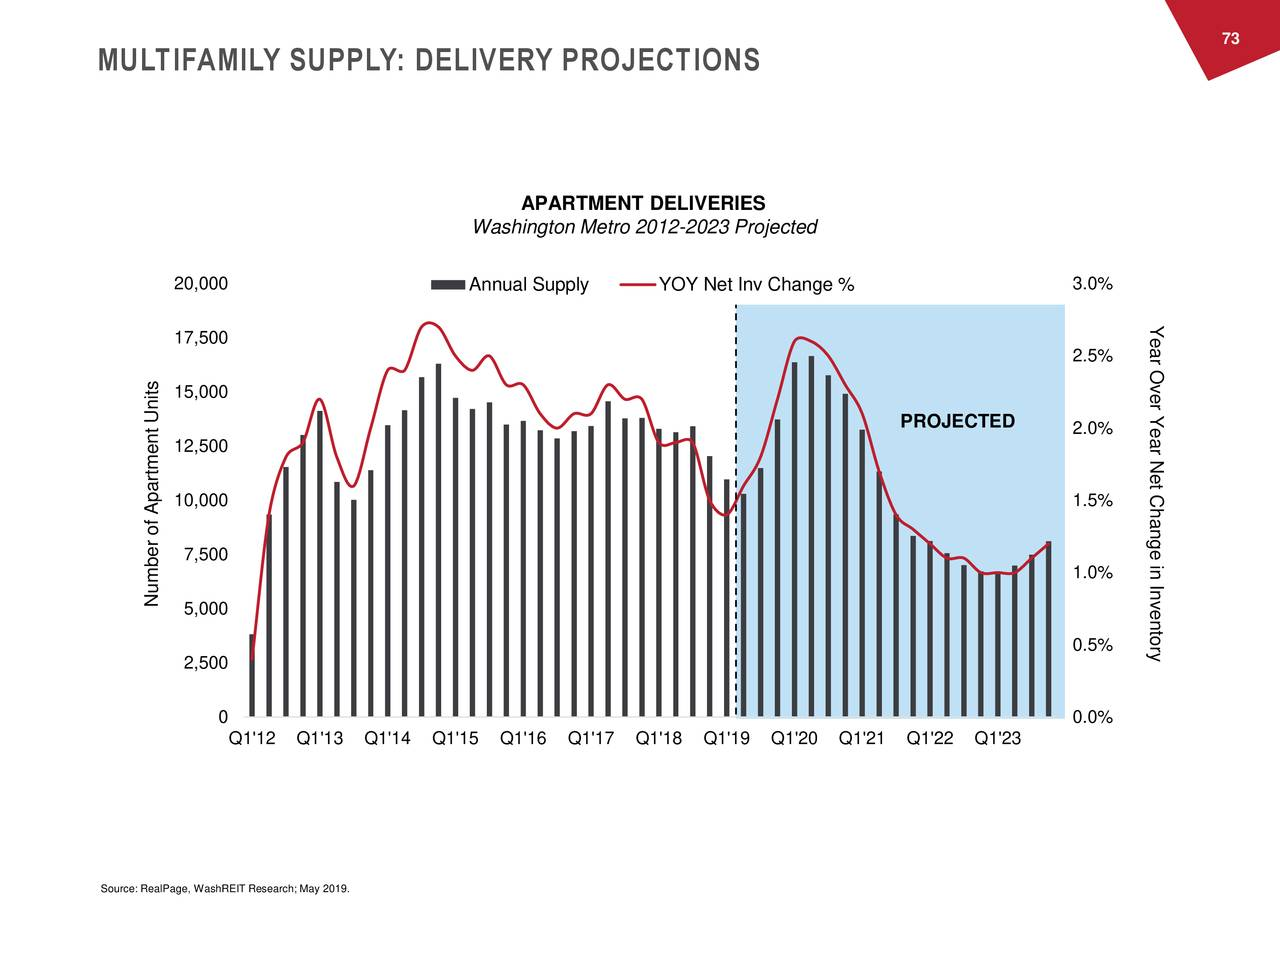 MULTIFAMILY SUPPLY: DELIVERY PROJECTIONS APARTMENT DELIVERIES Washington Metro 2012-2023 Projected 20,000 Annual Supply YOY Net Inv Change % 3.0% Year Over 17,500 2.5% 15,000 PROJECTED Year Net Change in Inventory 2.0% 12,500 10,000 1.5% 7,500 1.0% Nu5,000of Apartment Units 0.5% 2,500 0 0.0% Q1'12 Q1'13 Q1'14 Q1'15 Q1'16 Q1'17 Q1'18 Q1'19 Q1'20 Q1'21 Q1'22 Q1'23 Source: RealPage, WashREIT Research; May 2019.